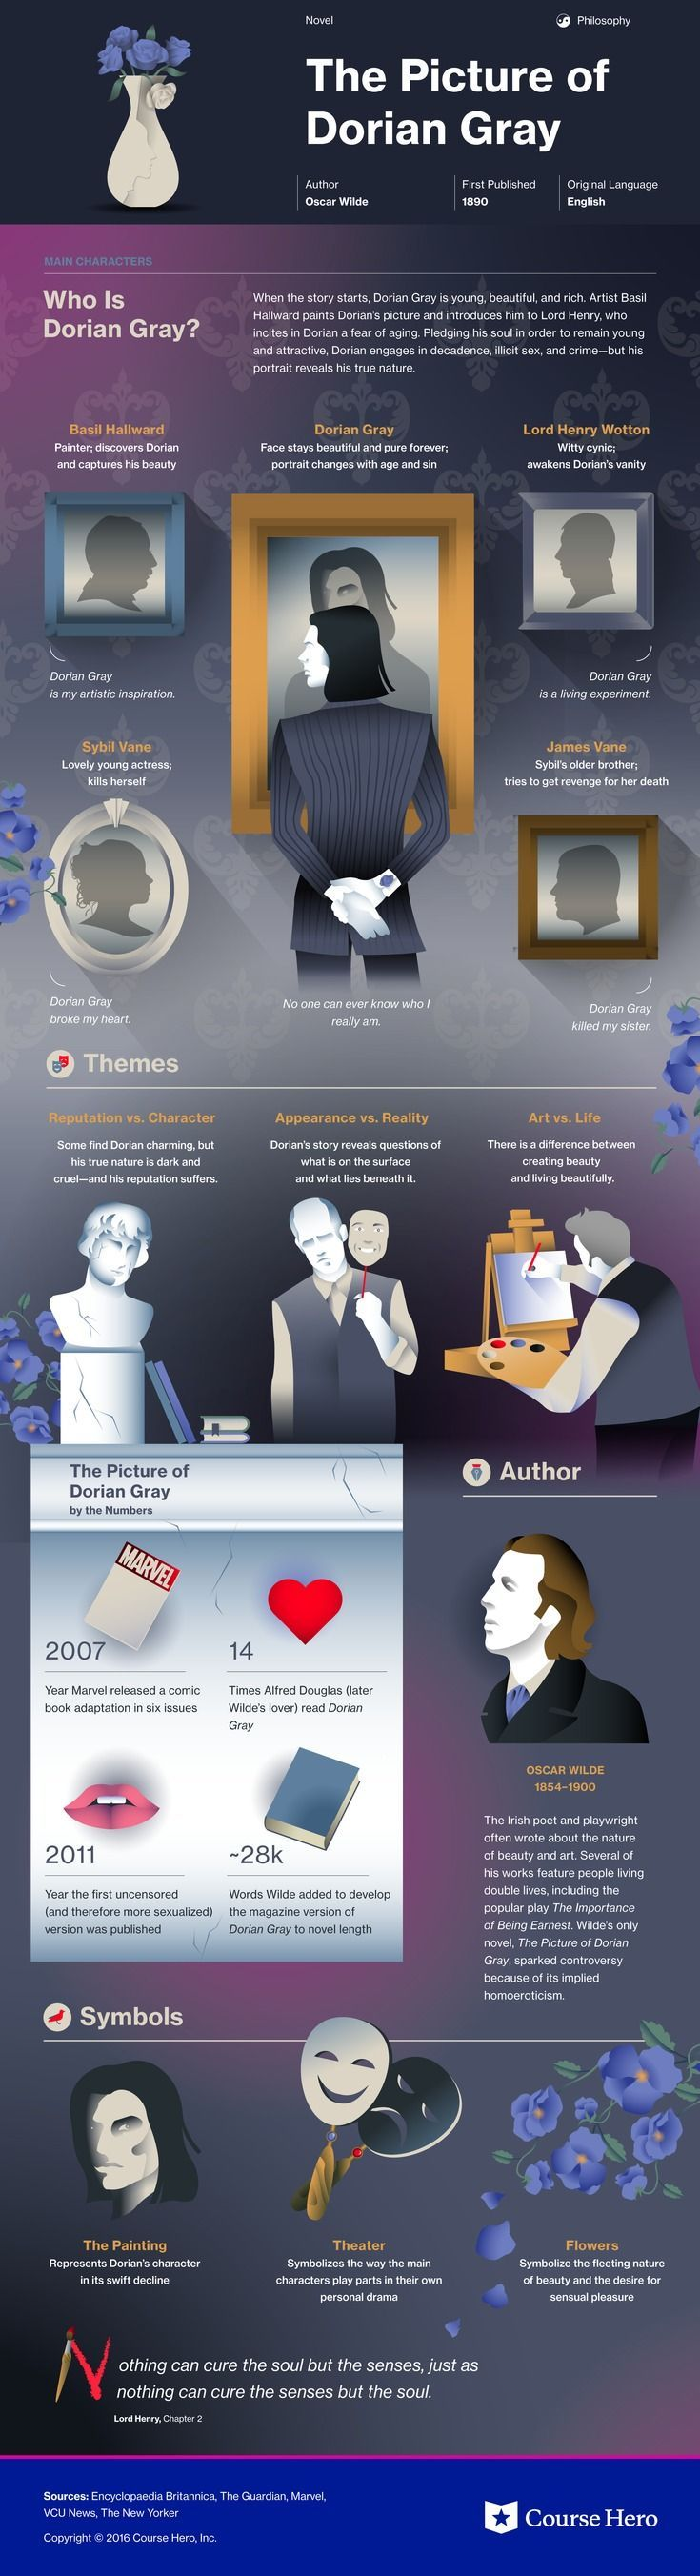 The Picture of Dorian Gray Study Guide | Book infographic ...